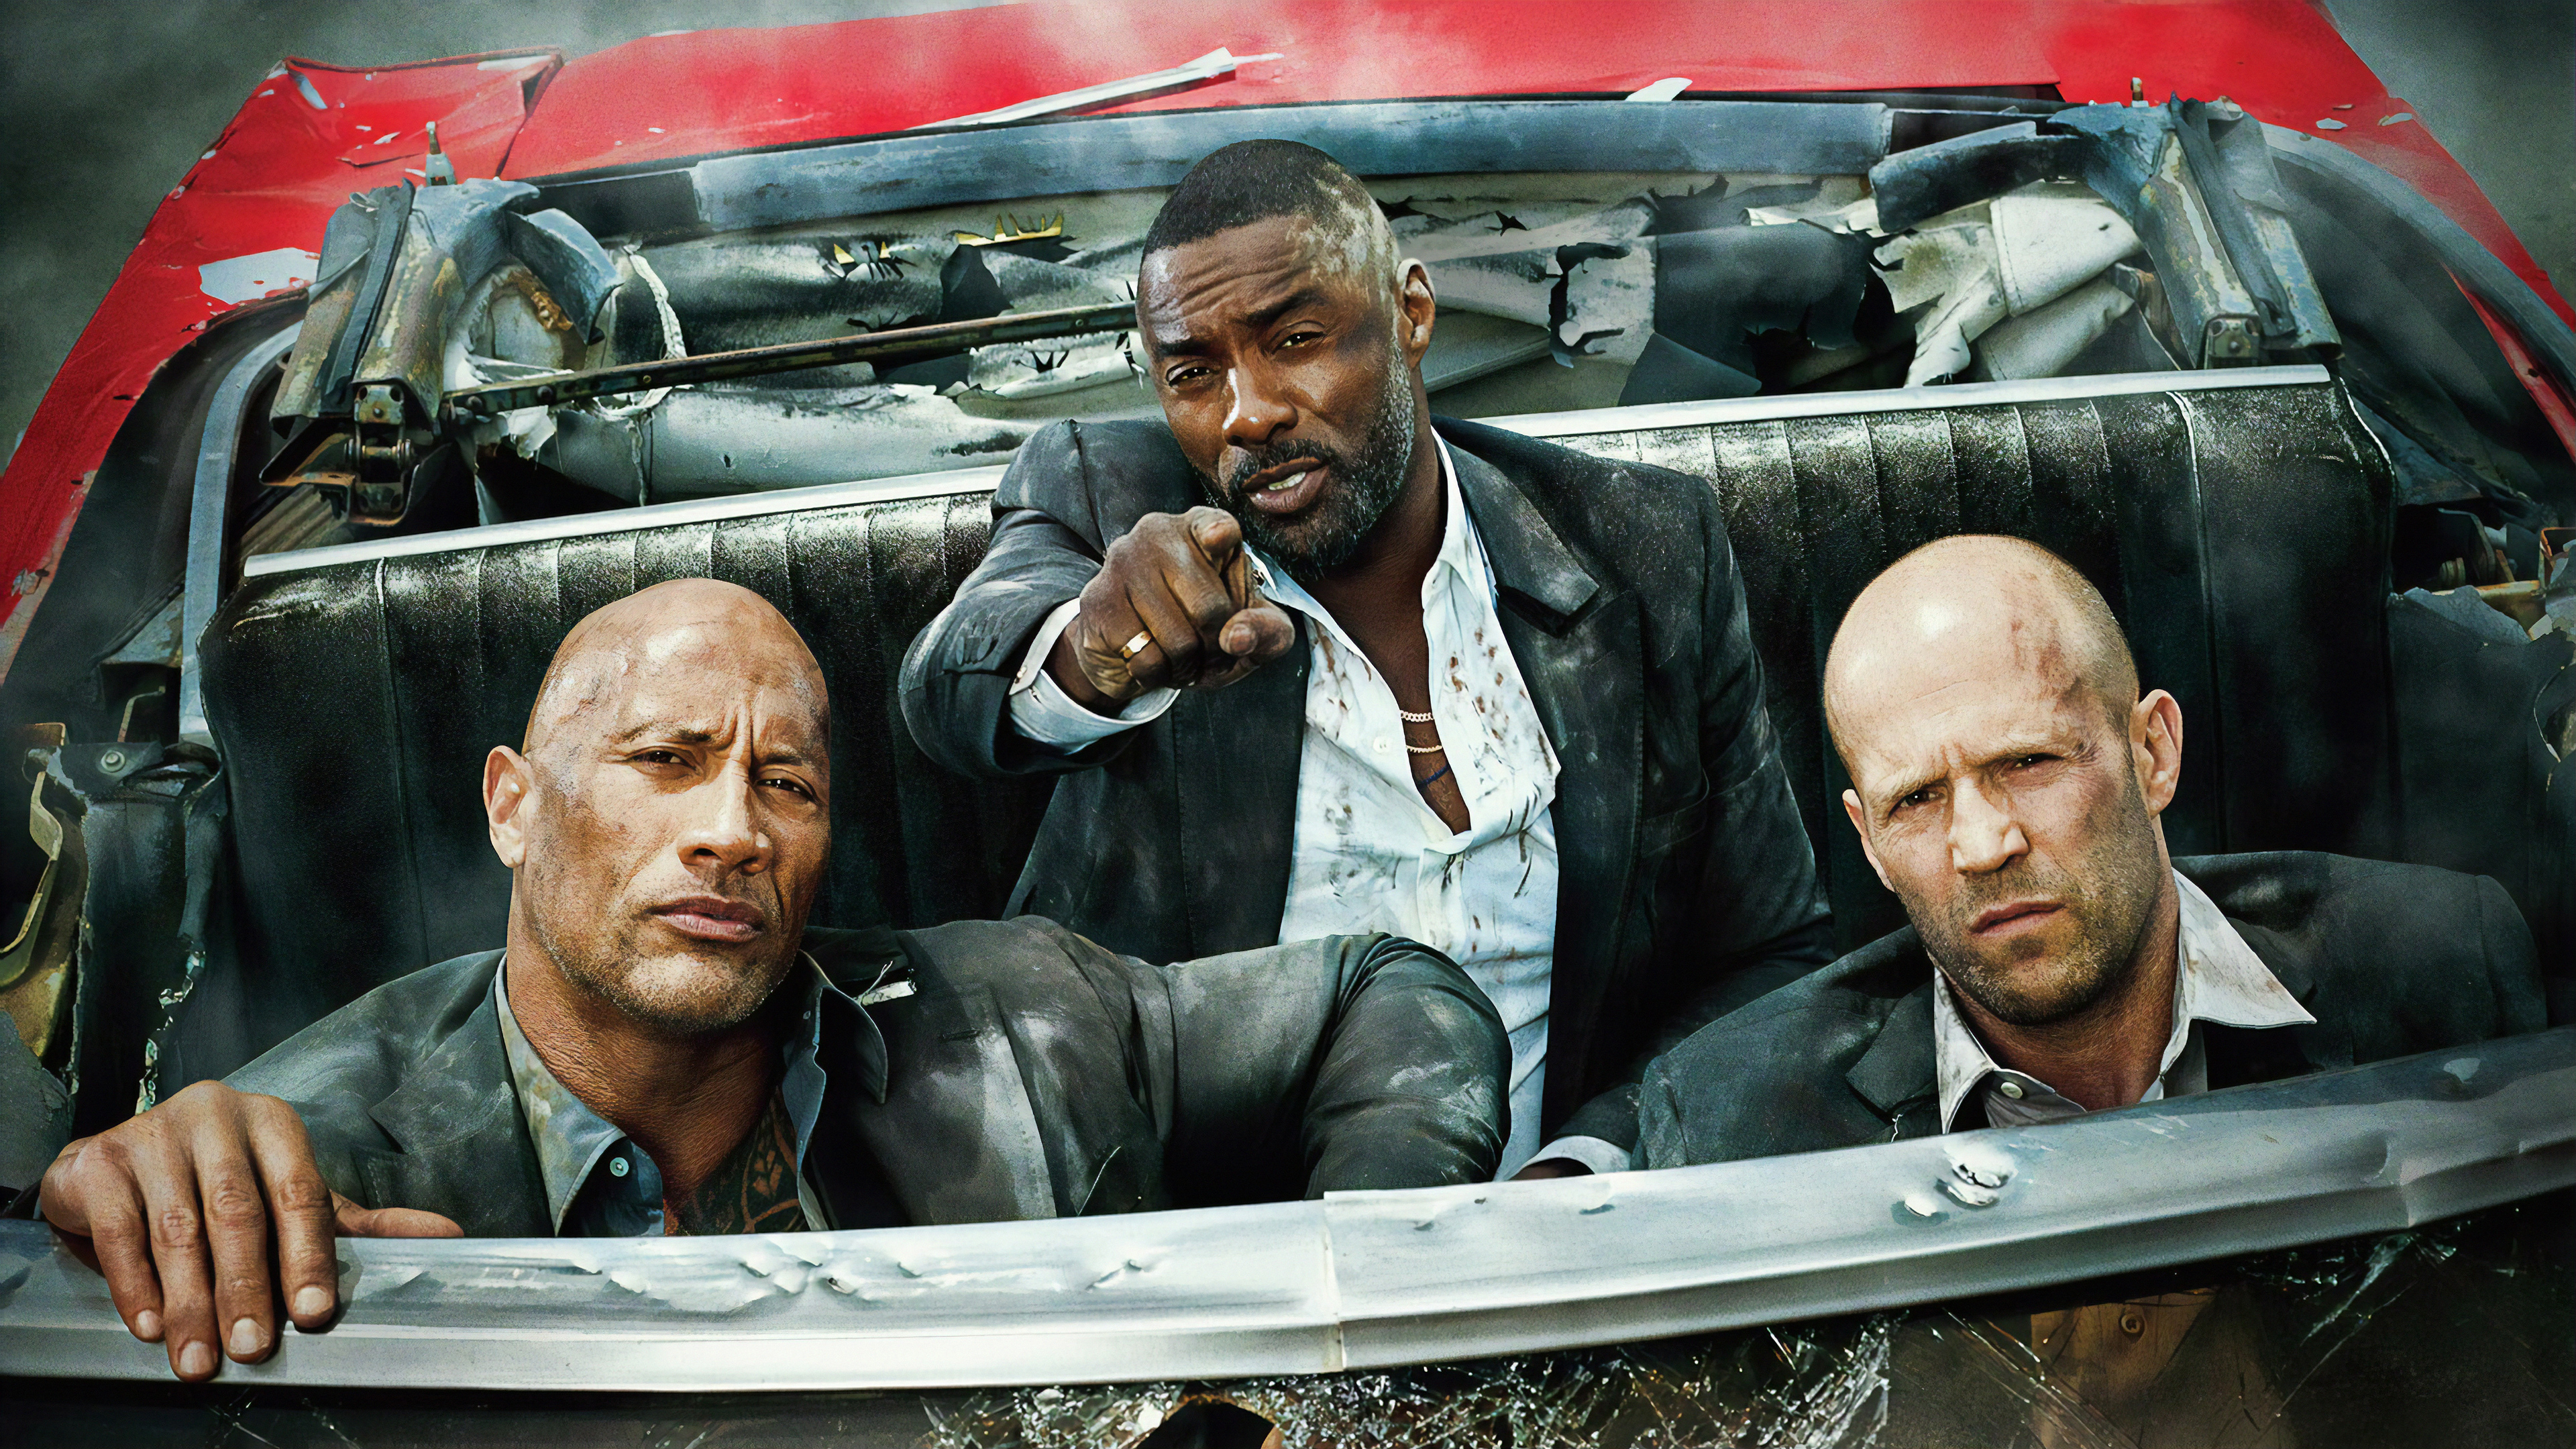 hobbs and shaw ew 2019 1562107165 - Hobbs And Shaw Ew 2019 - movies wallpapers, jason statham wallpapers, hobbs and shaw wallpapers, hd-wallpapers, dwayne johnson wallpapers, 4k-wallpapers, 2019 movies wallpapers